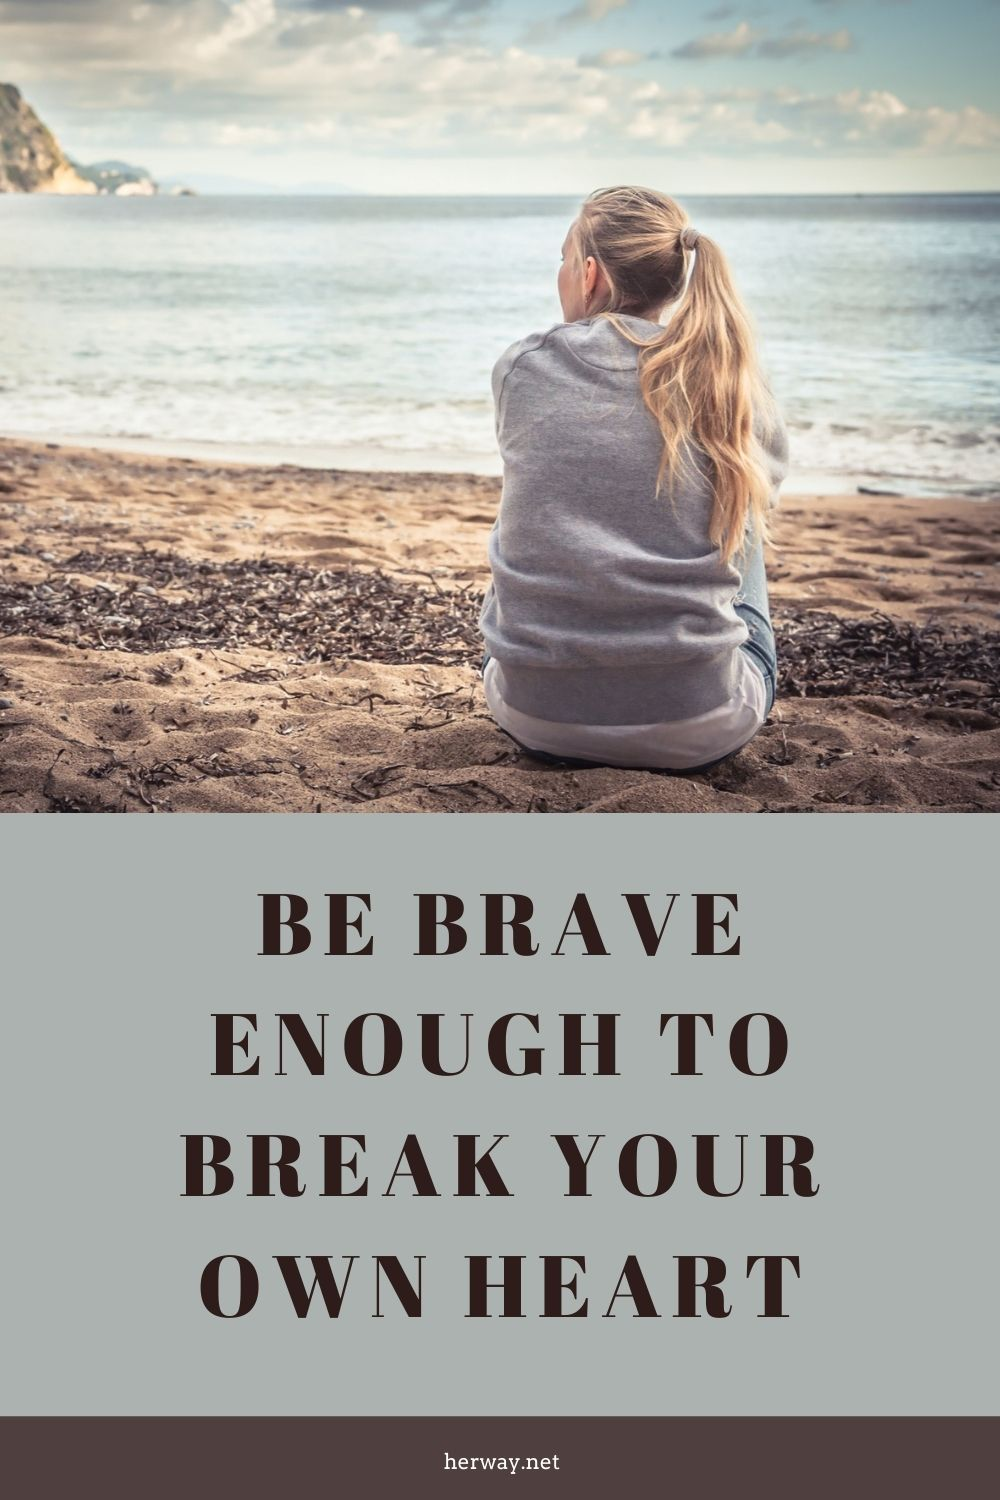 Be Brave Enough To Break Your Own Heart